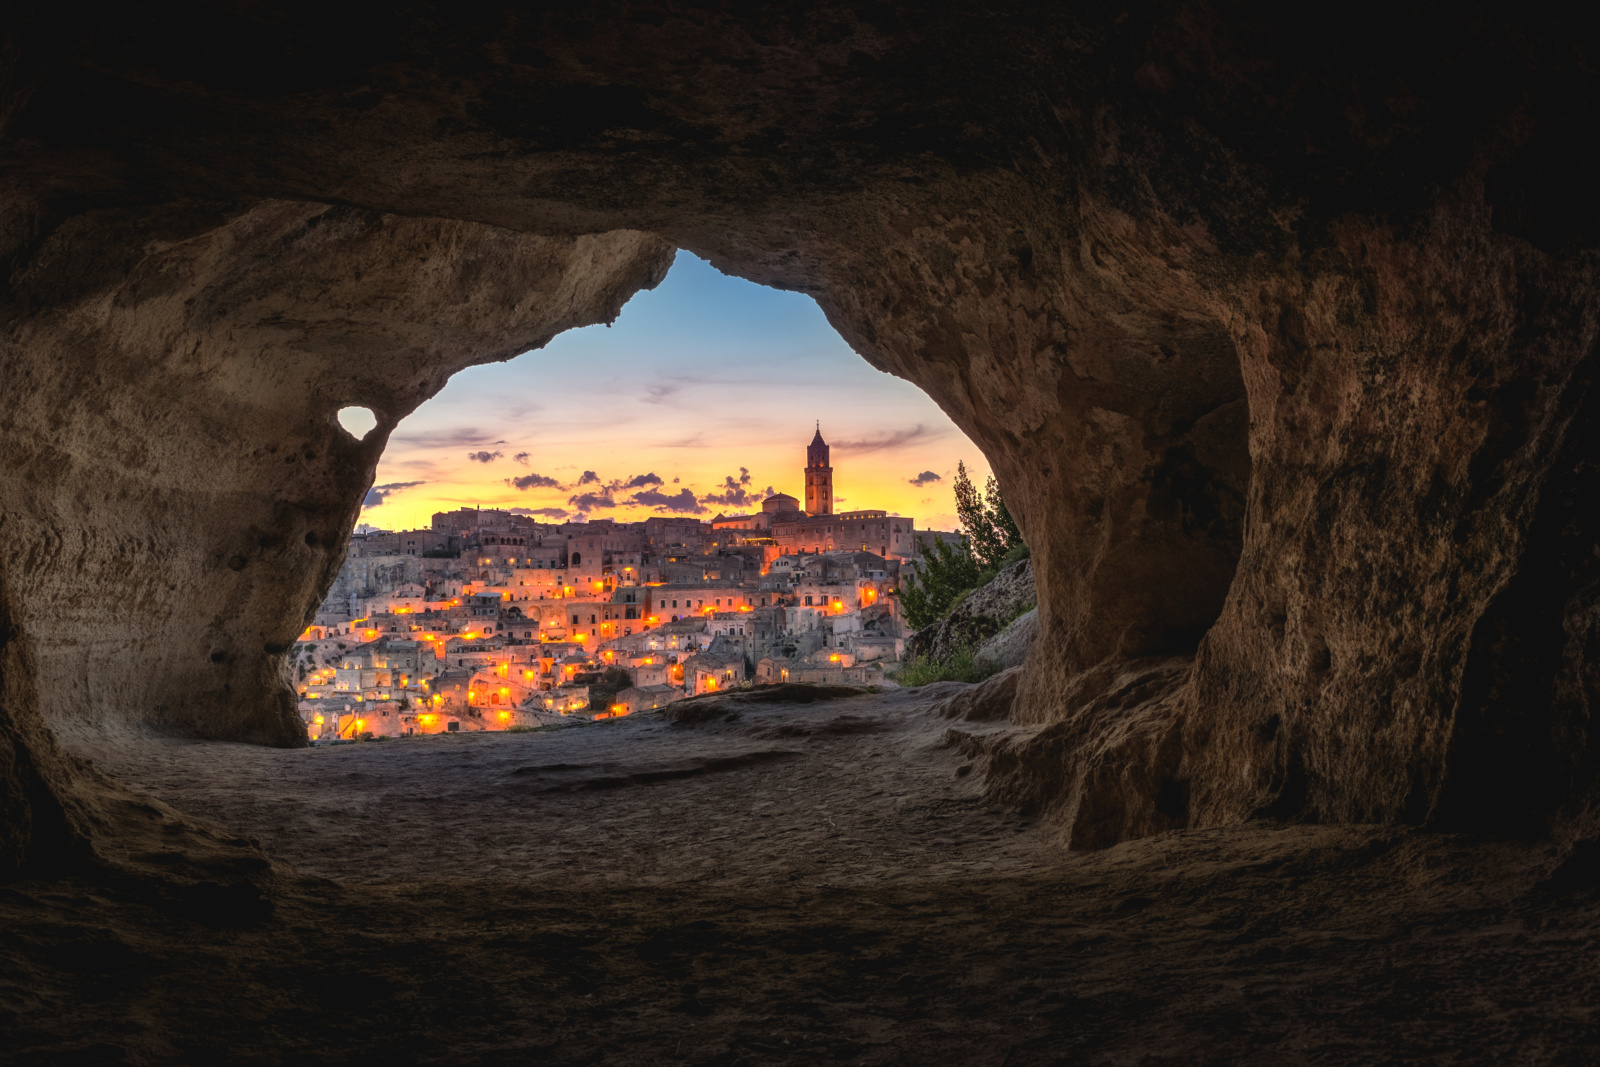 Photo by Luca Micheli